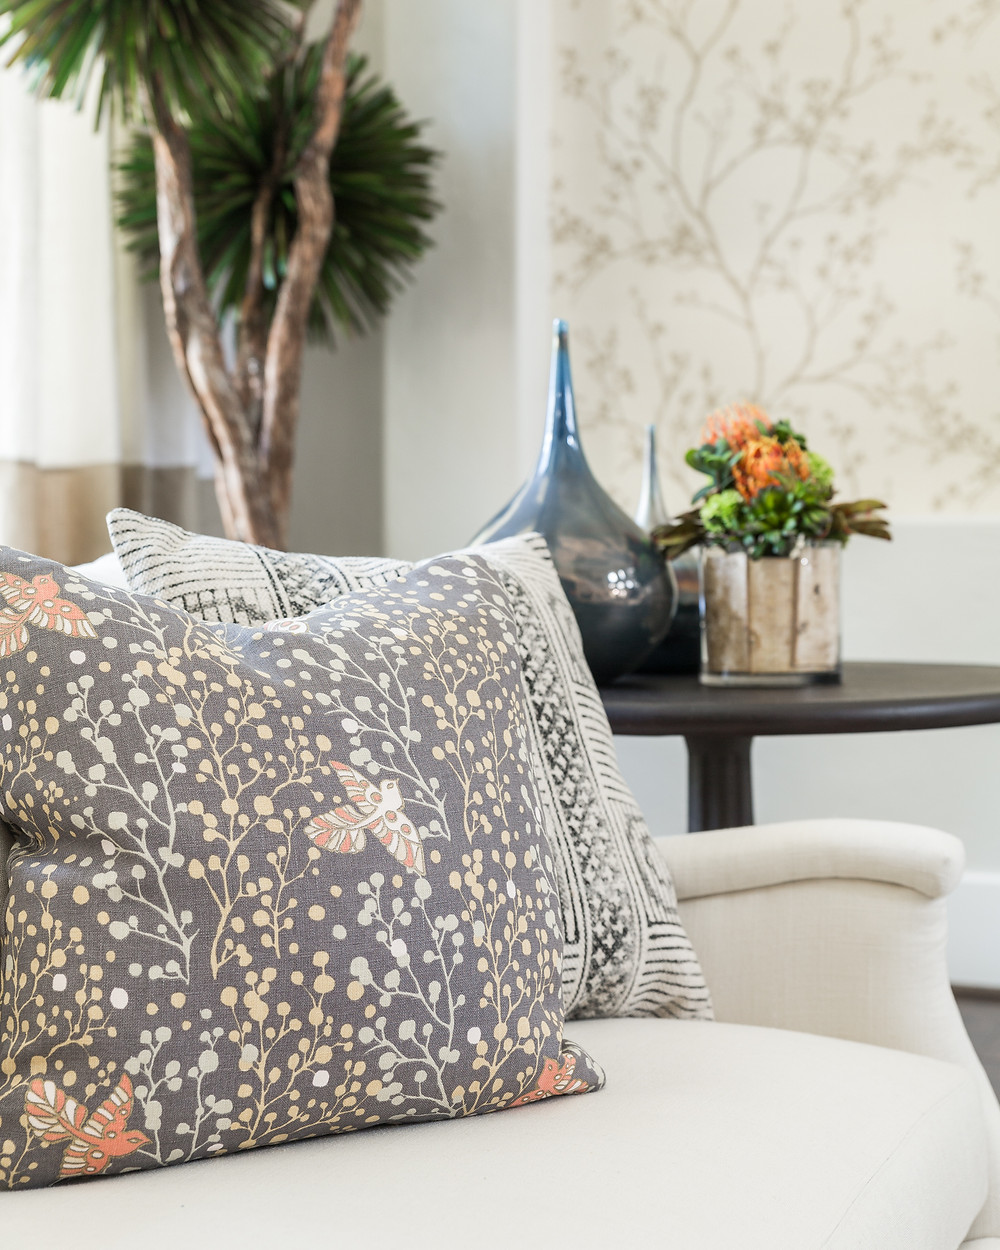 Living room with patterned pillows in a white slipcover look sofa